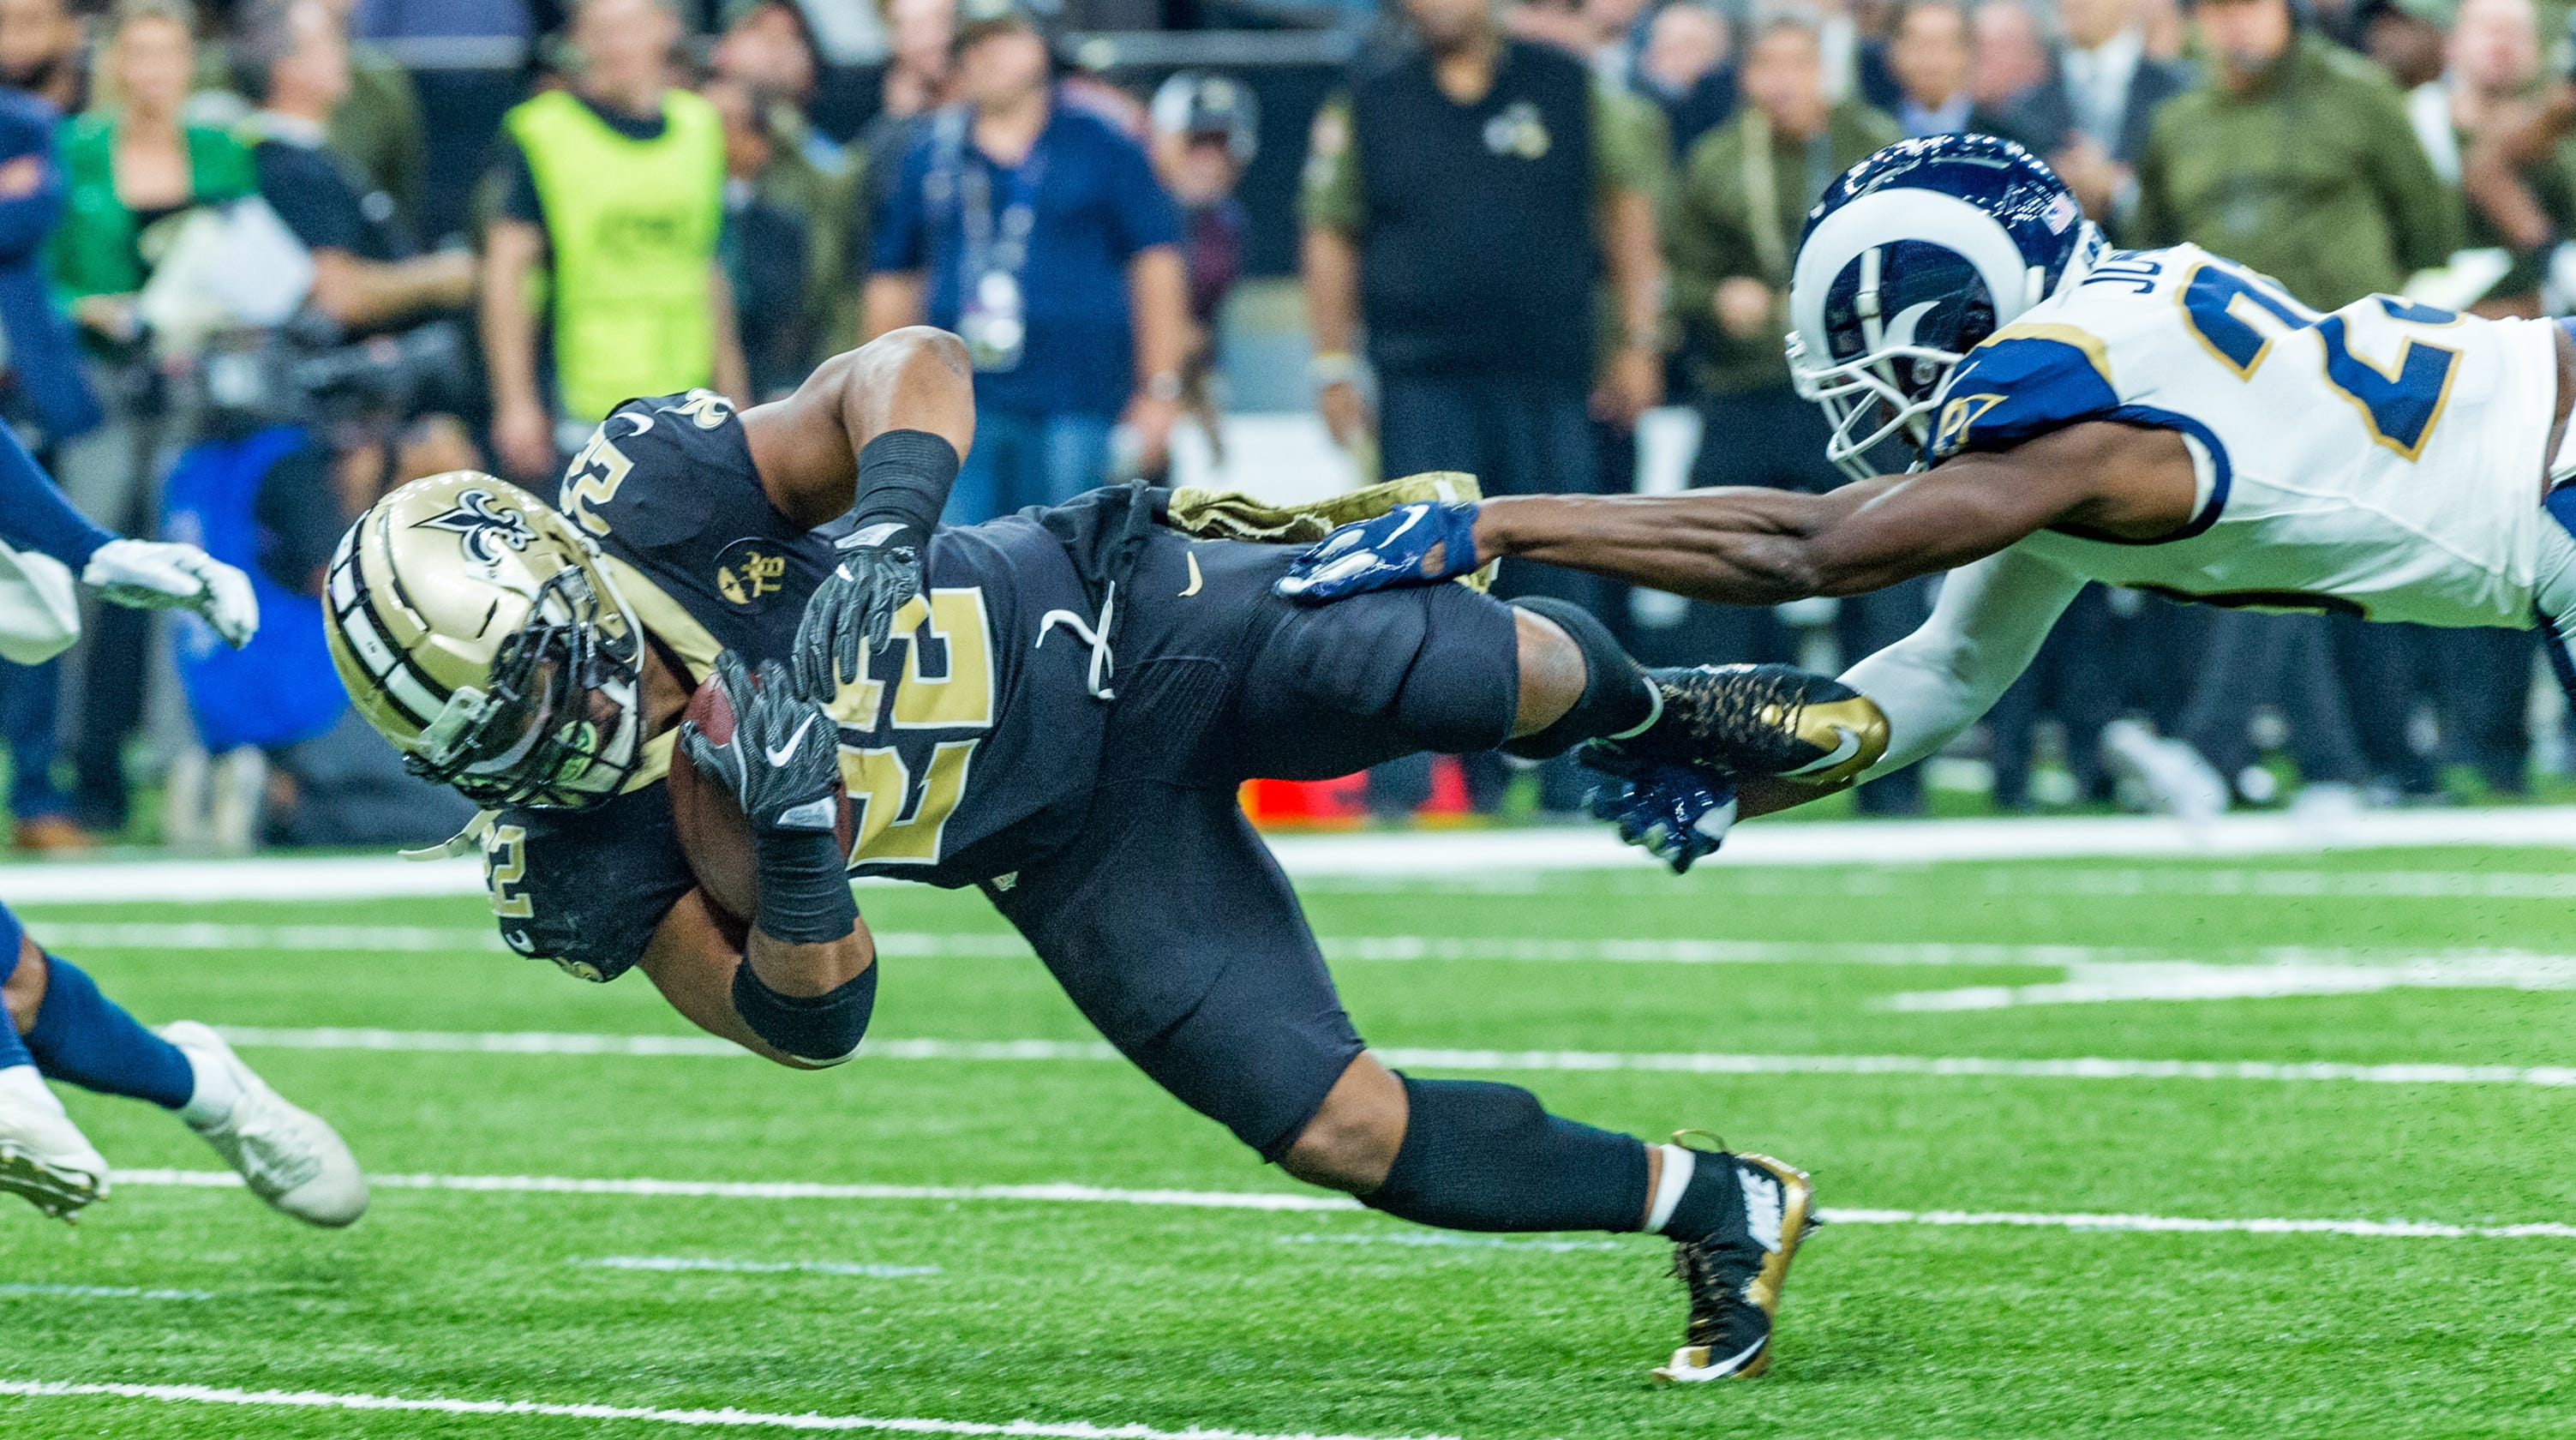 480a8df79 1 Loss Angeles - Saints knock off undefeated Rams